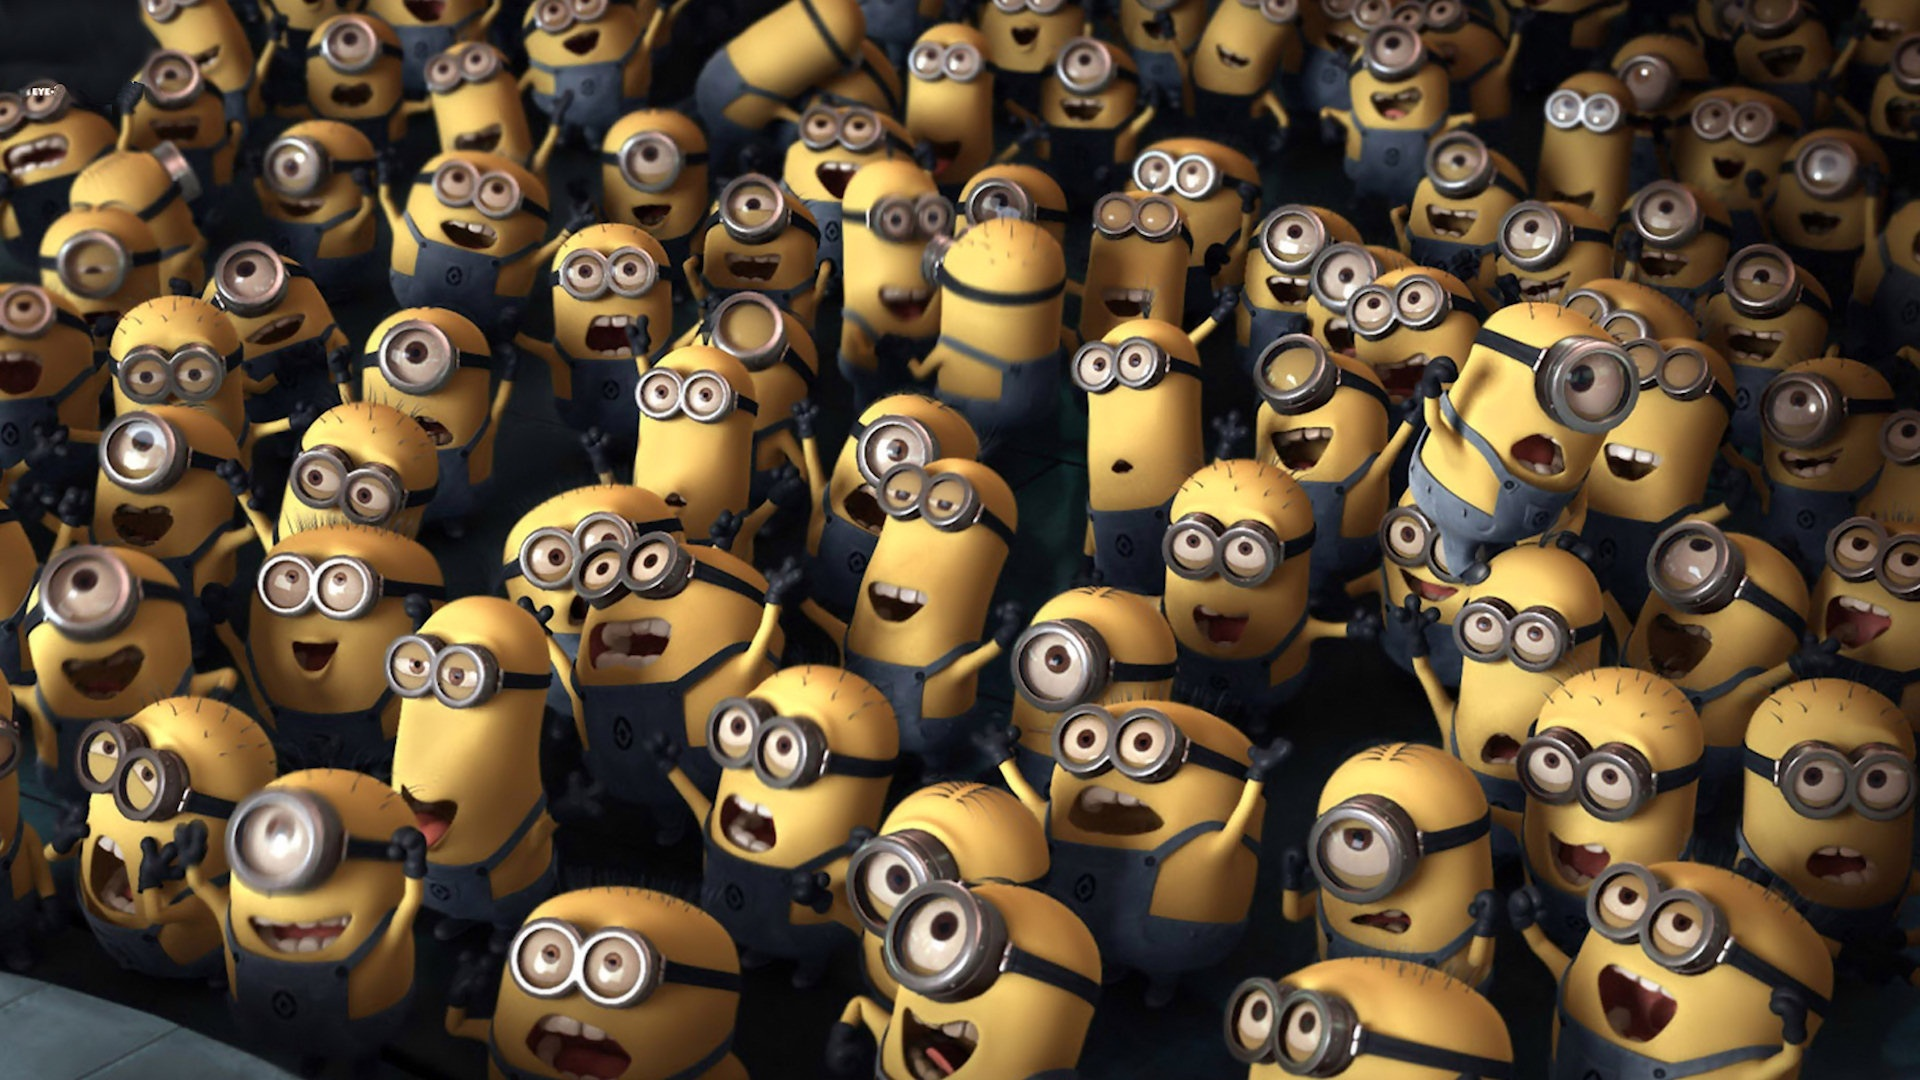 minion-1920x1080-Need-iPhone-S-Plus-Background-for-IPhoneSPlus-Follow-iPhone-wallpaper-wpc5807216